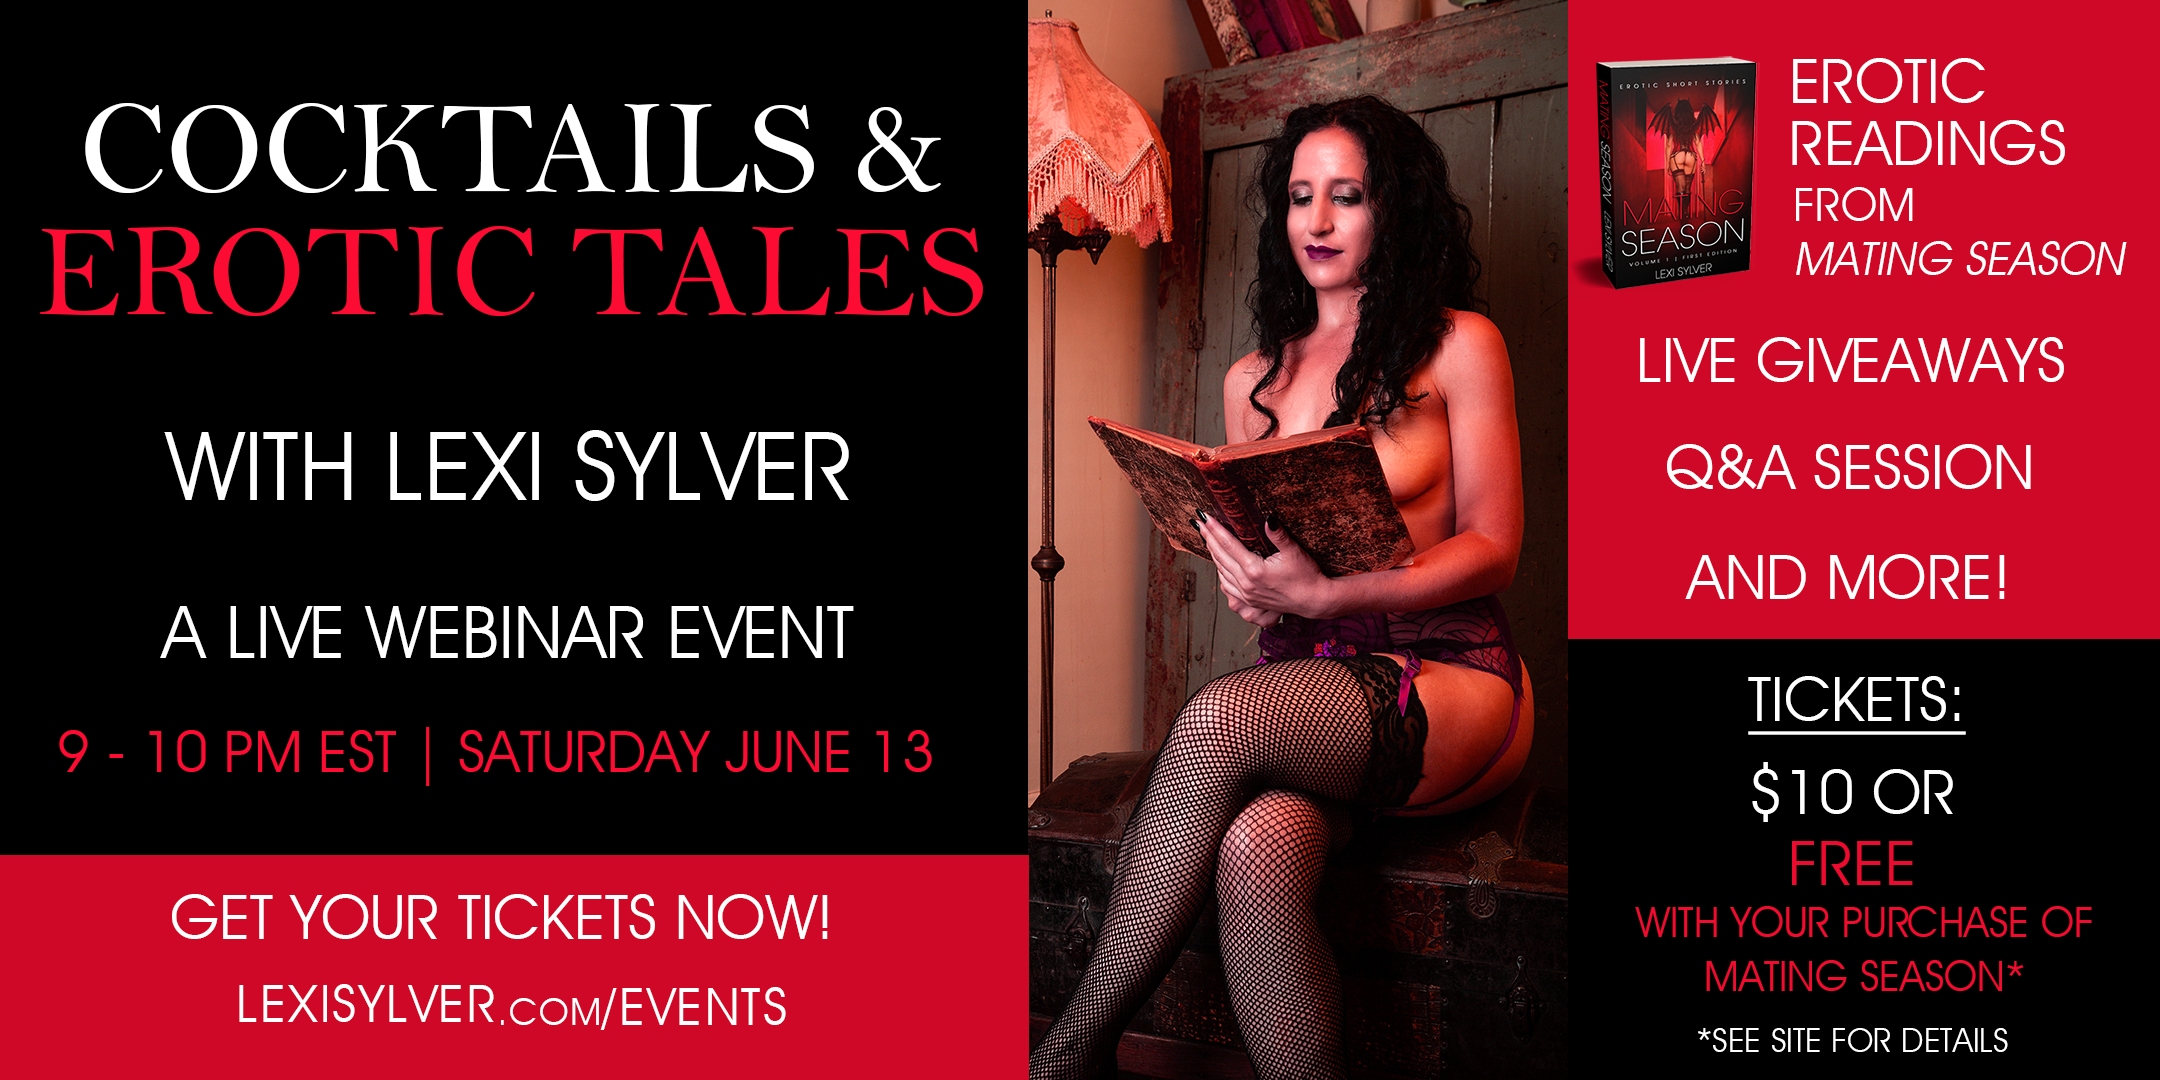 Lexi Sylver Cocktails & Erotic Tales